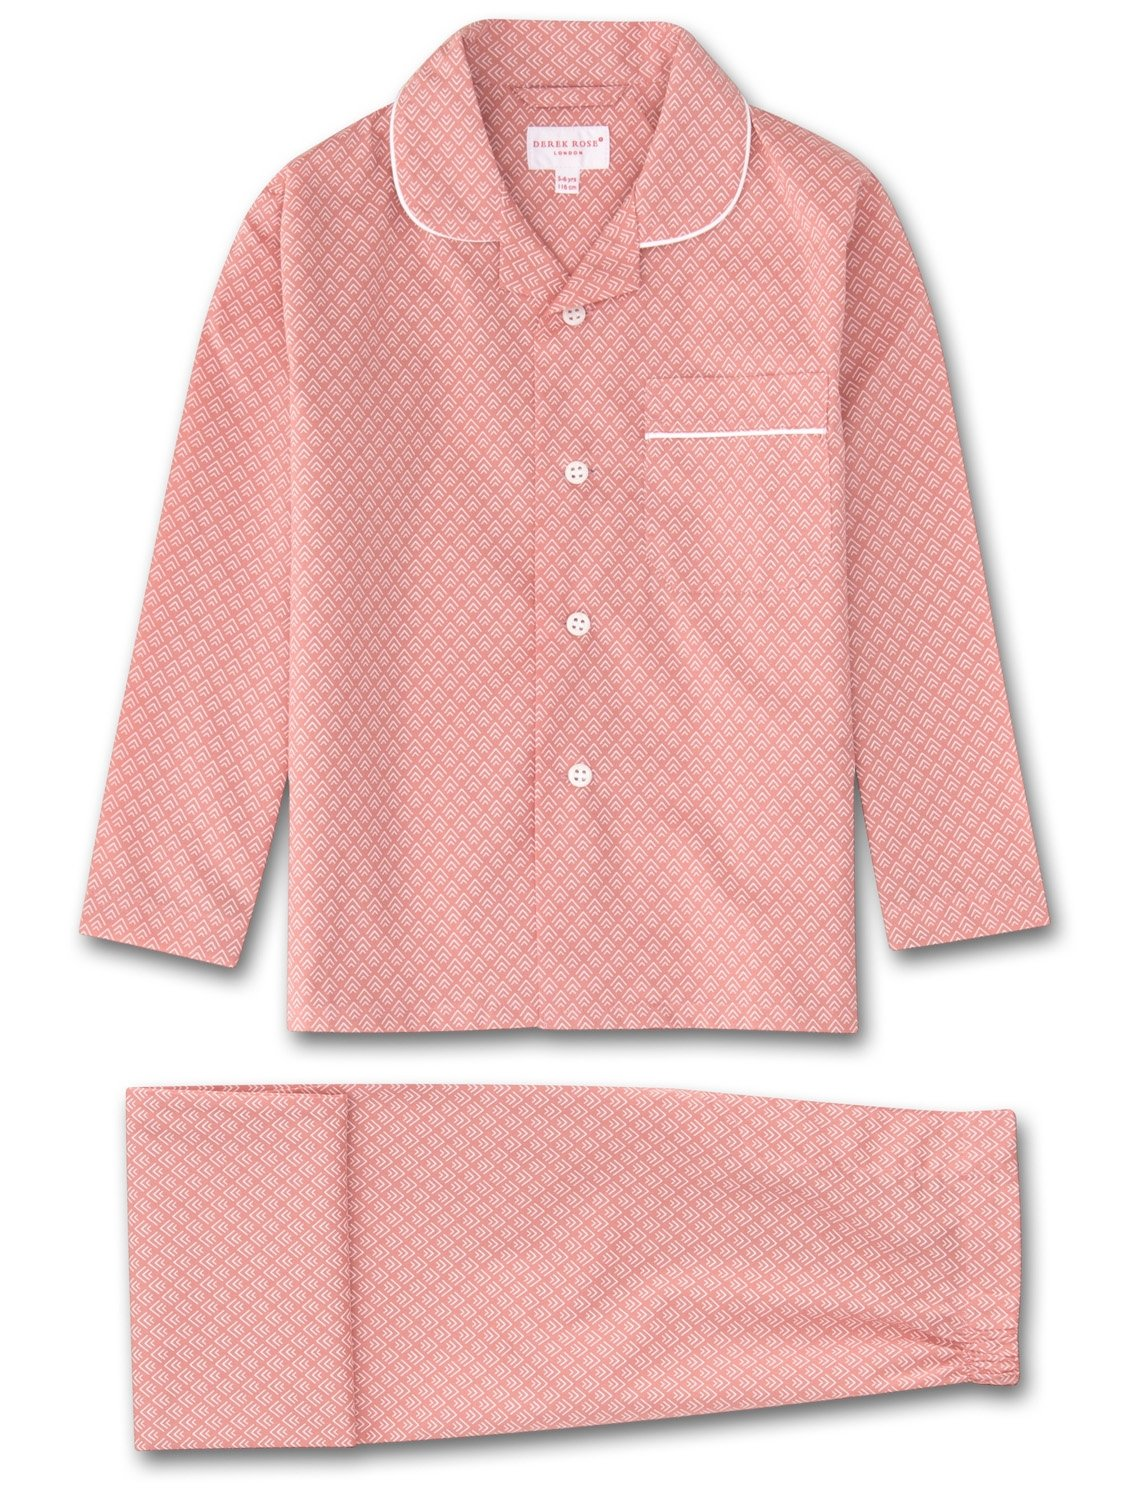 Kids' Pyjamas Nelson 66 Cotton Batiste Pink